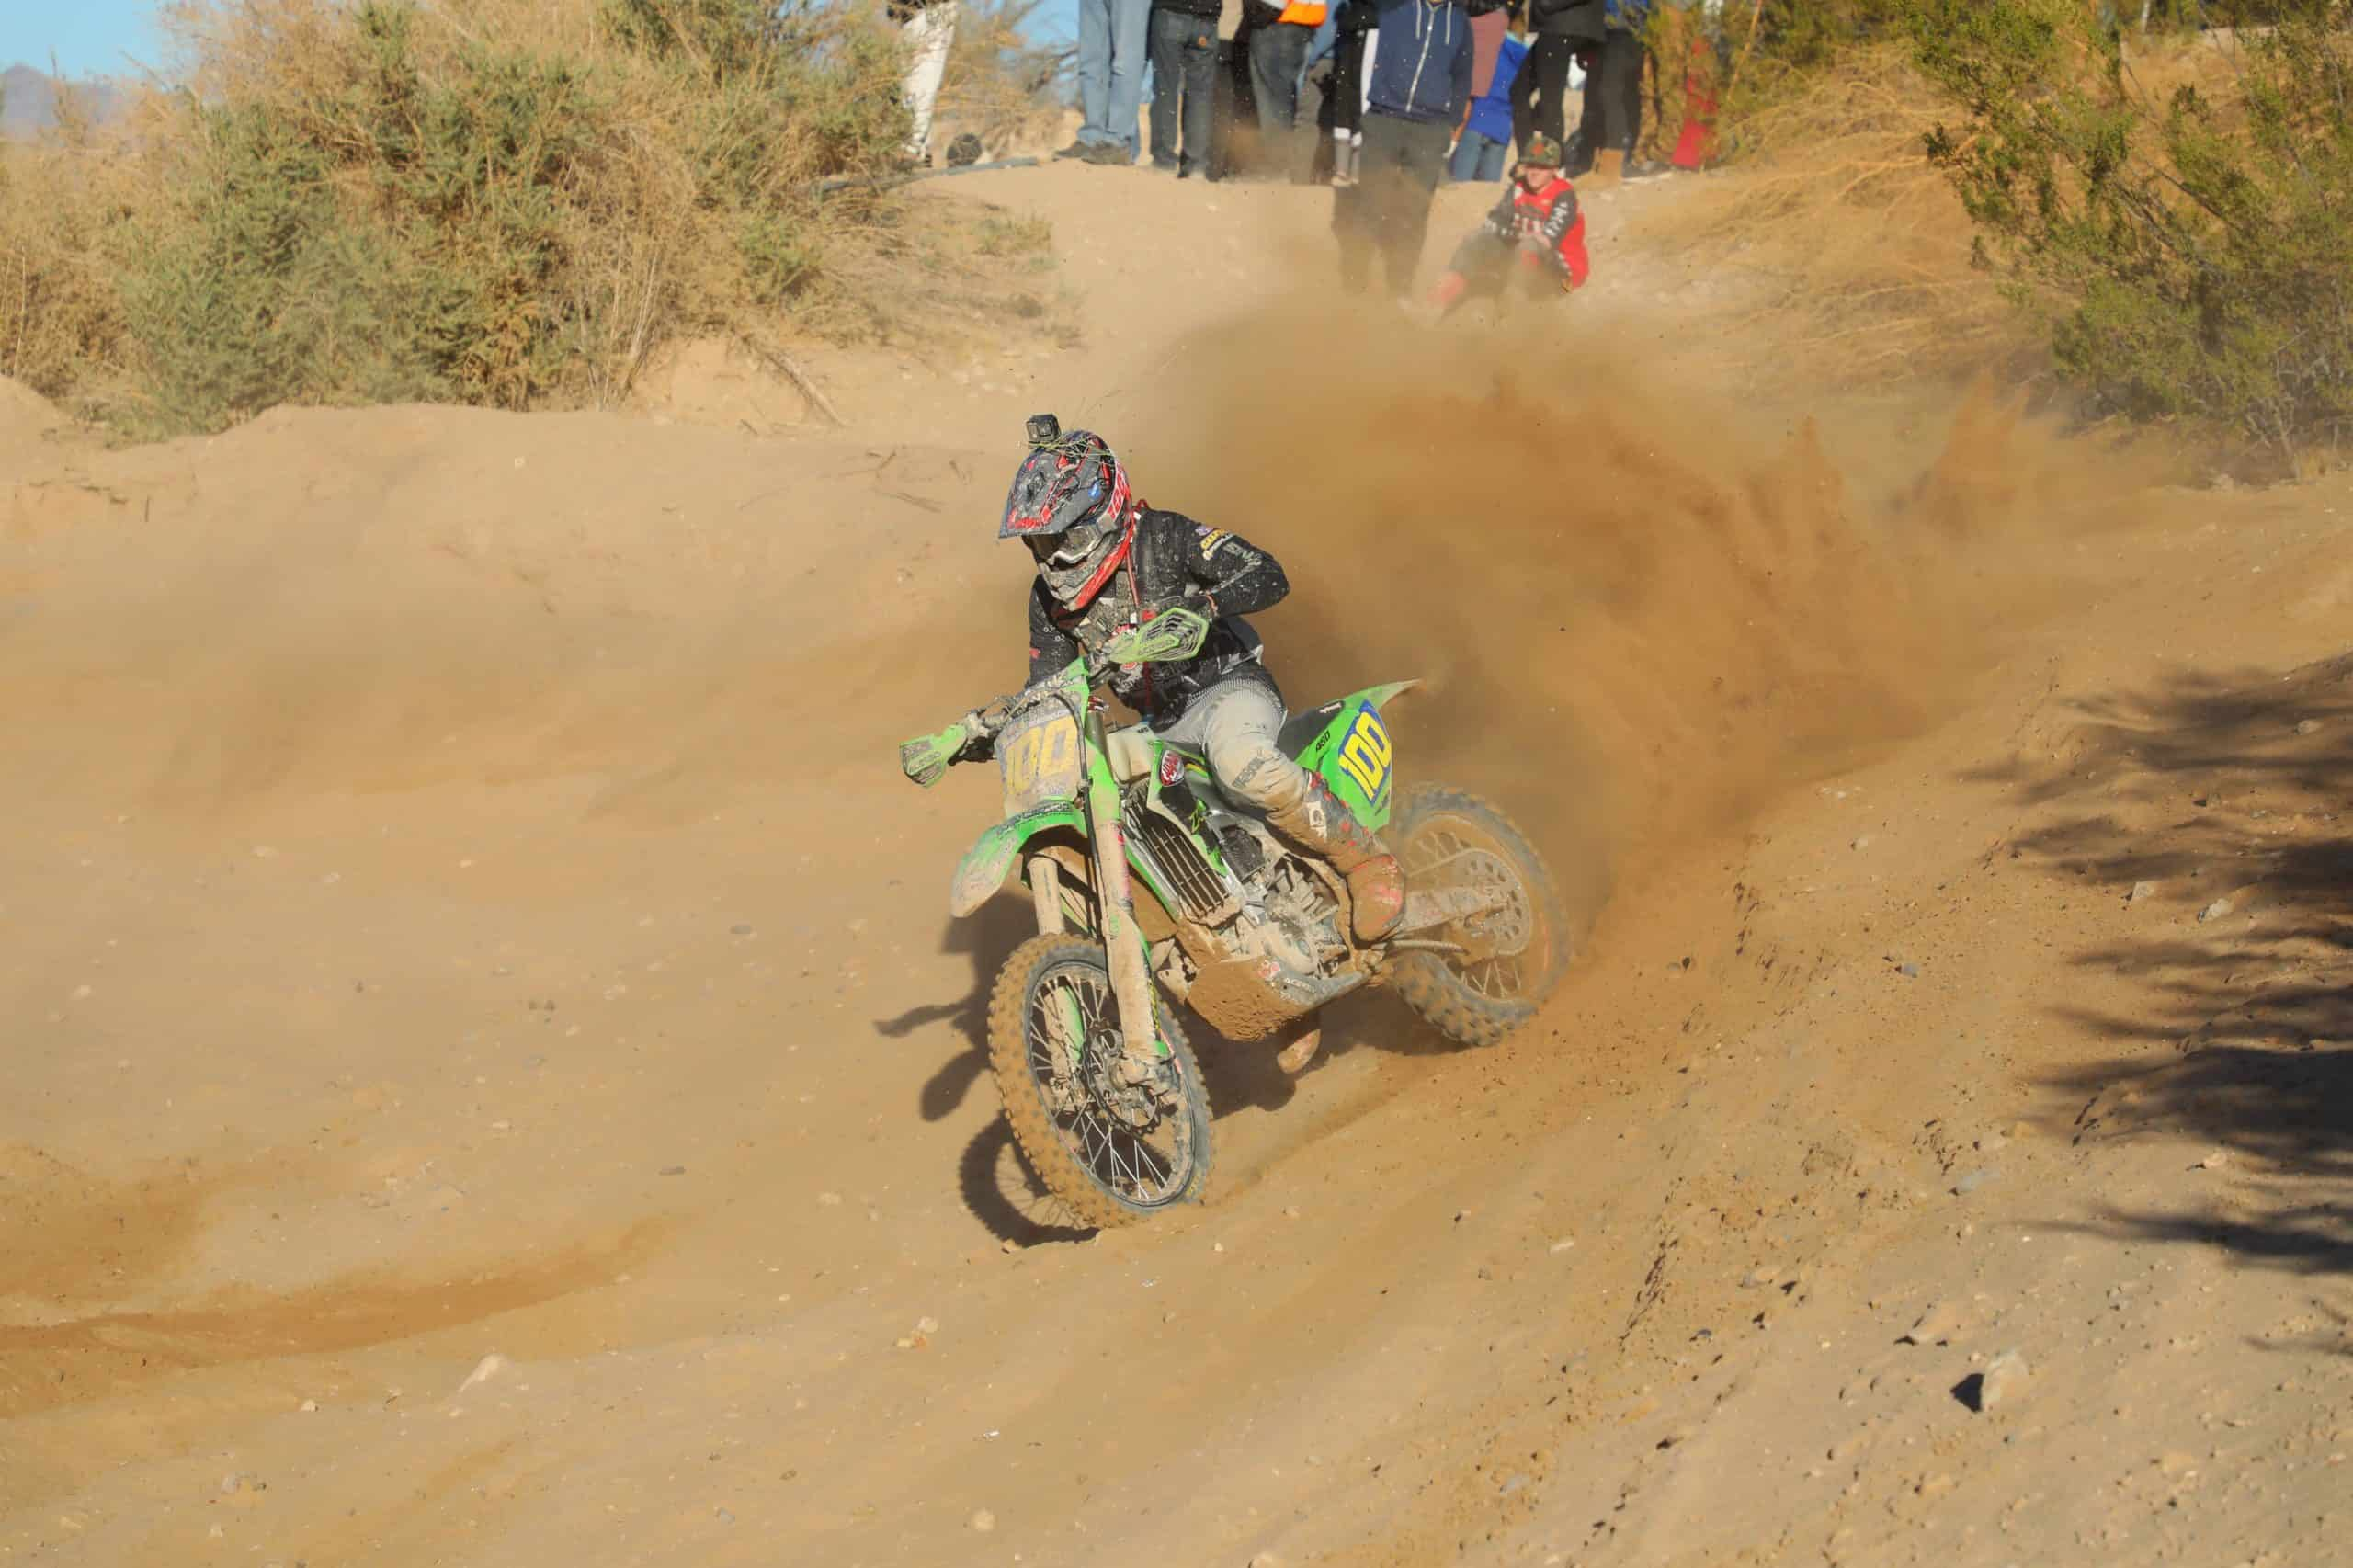 zach bell riding his kx450 at the 2020 havasu worcs